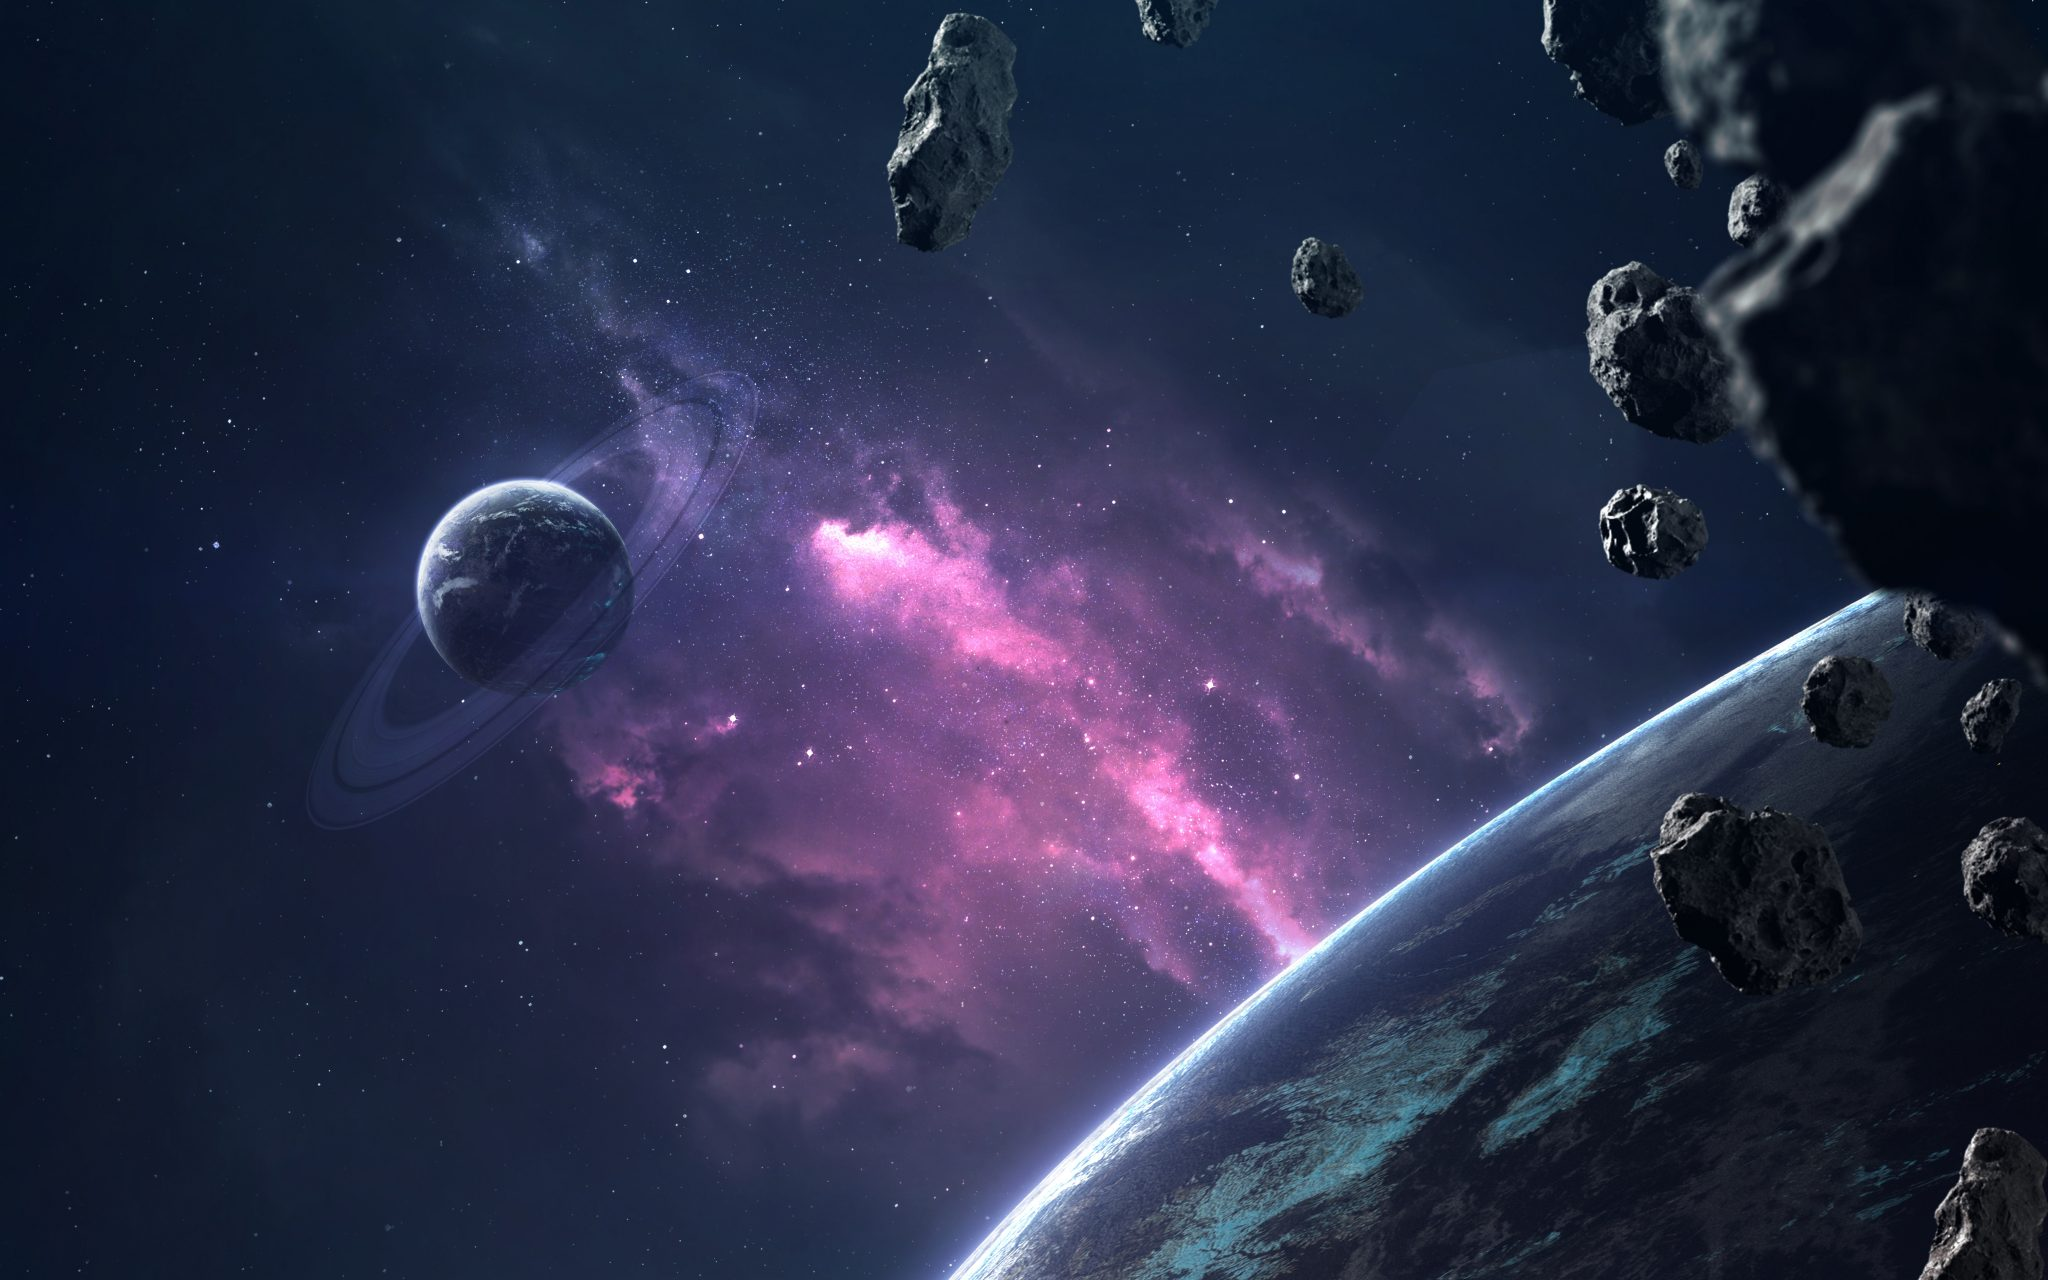 asteroids in deep space